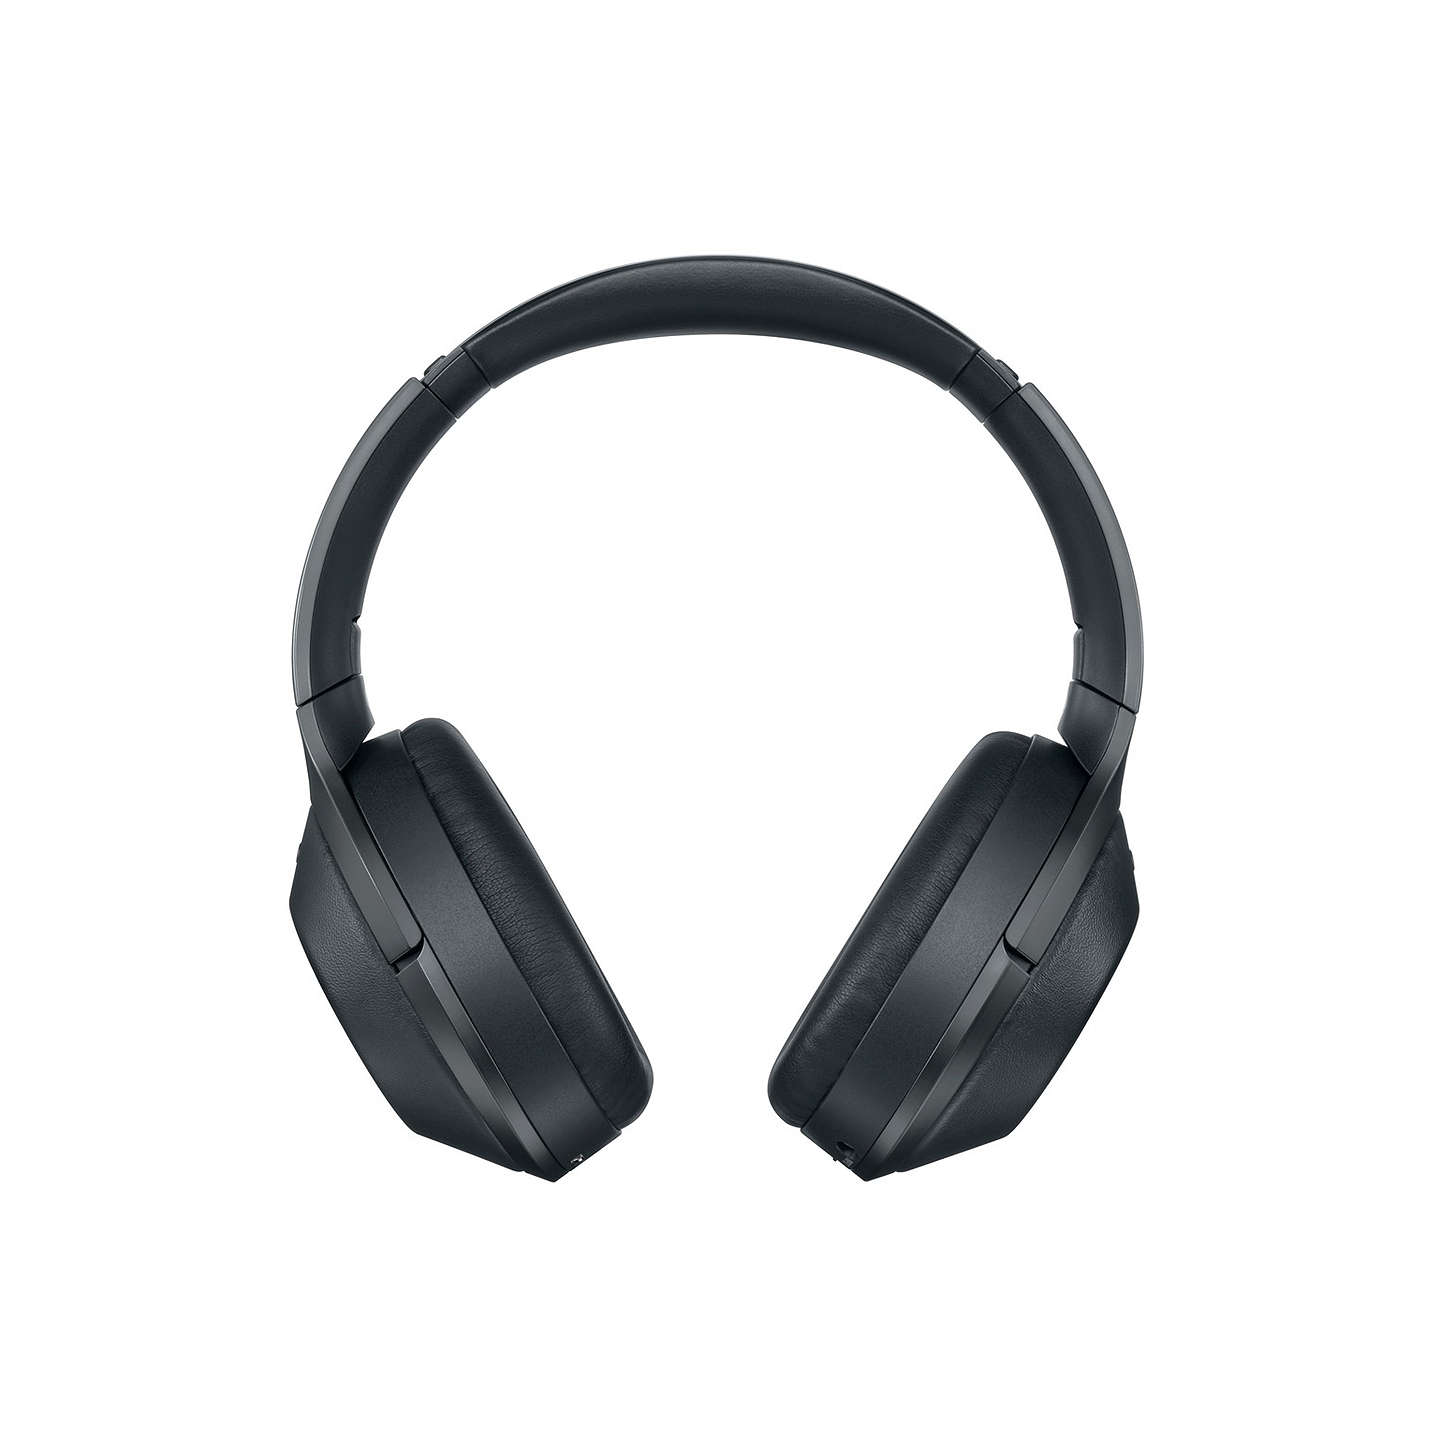 BuySony MDR-1000X Noise Cancelling Wireless Bluetooth NFC High-Resolution Audio Over-Ear Headphones with Mic/Remote, Black Online at johnlewis.com